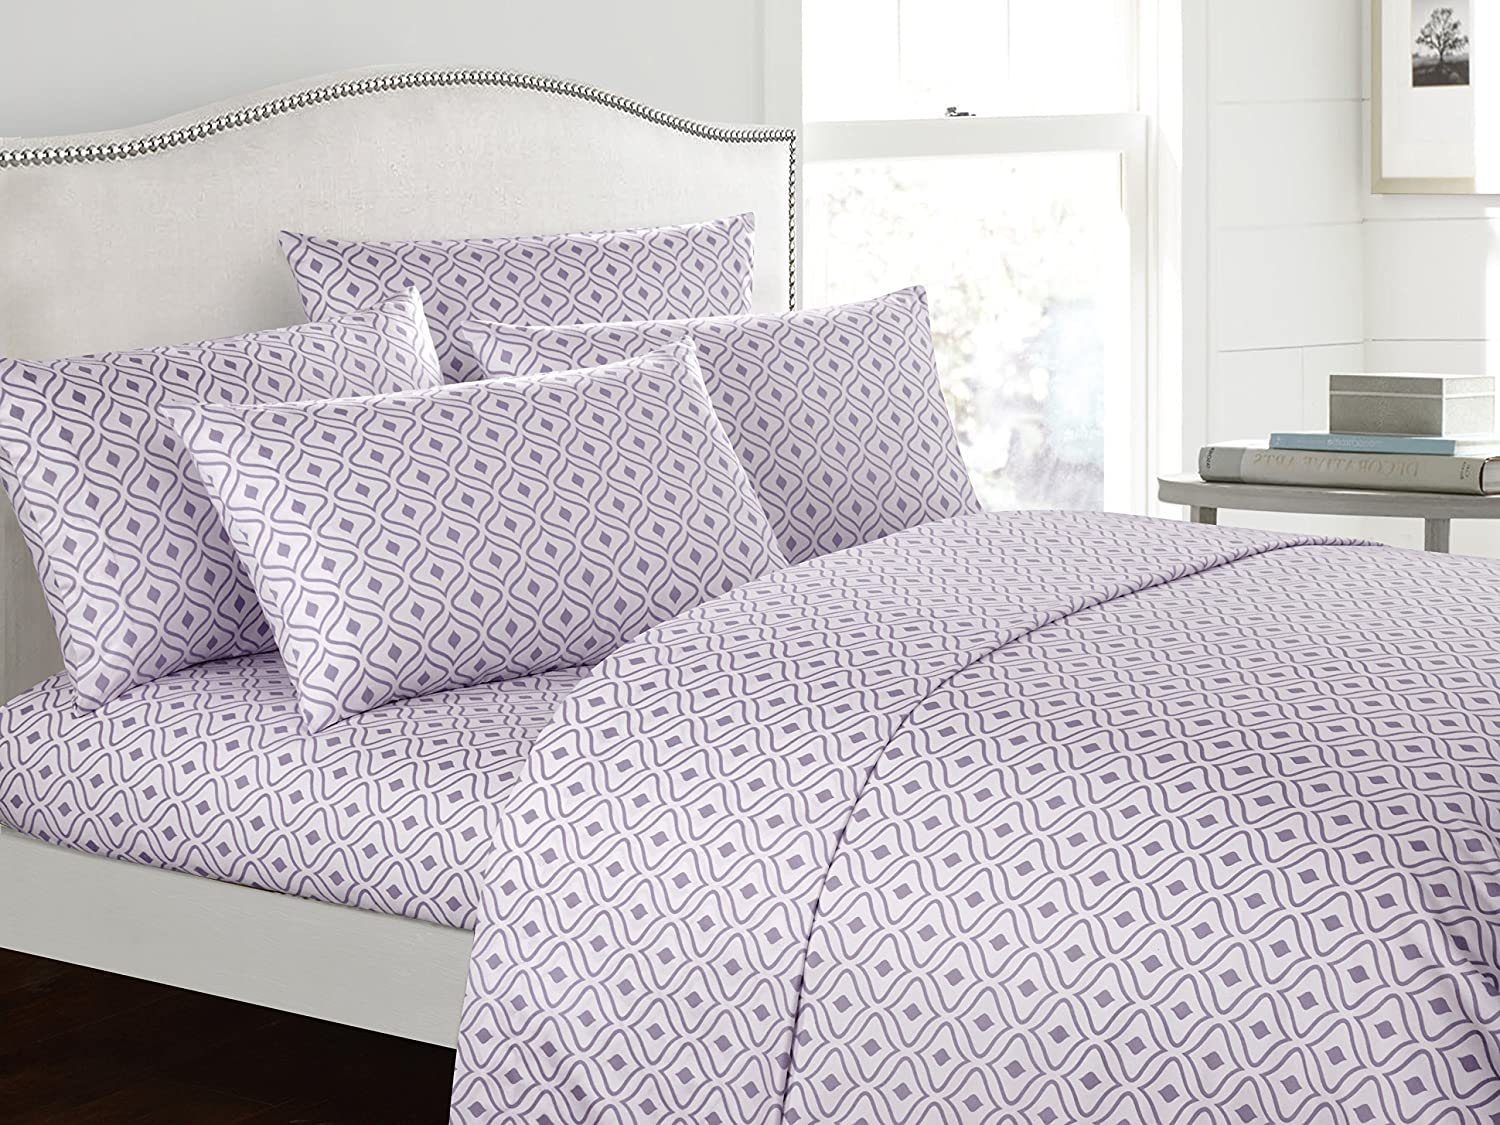 Twin Navy Includes Flat /& Fitted Sheets and Bonus Pillowcases Chic Home Ayala 4 Piece Set Super Soft Two-Tone Diamond Print Geometric Pattern Deep Pocket Design